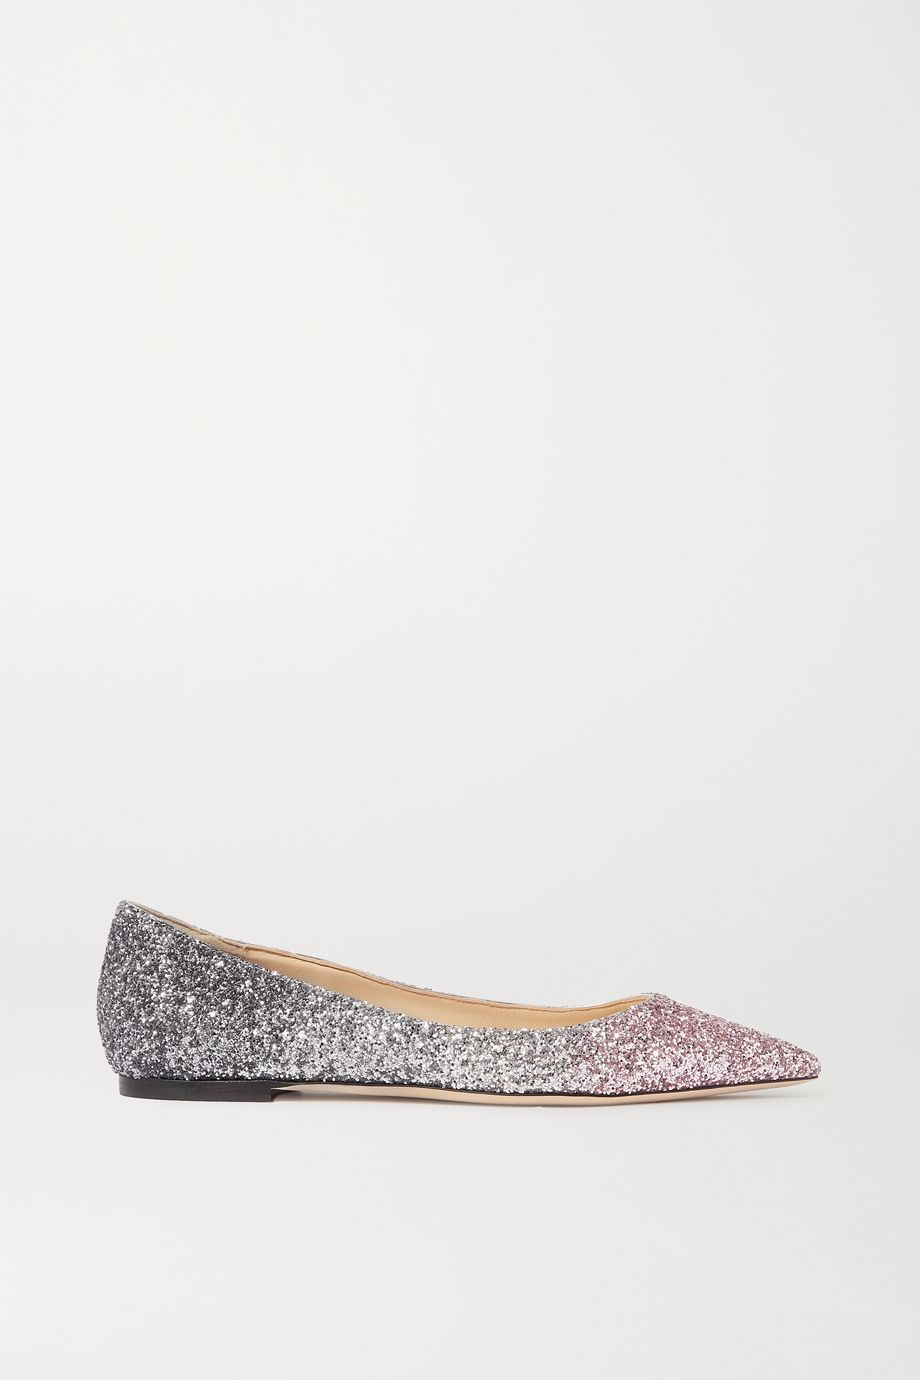 Jimmy Choo Romy ombré glittered leather point-toe flats